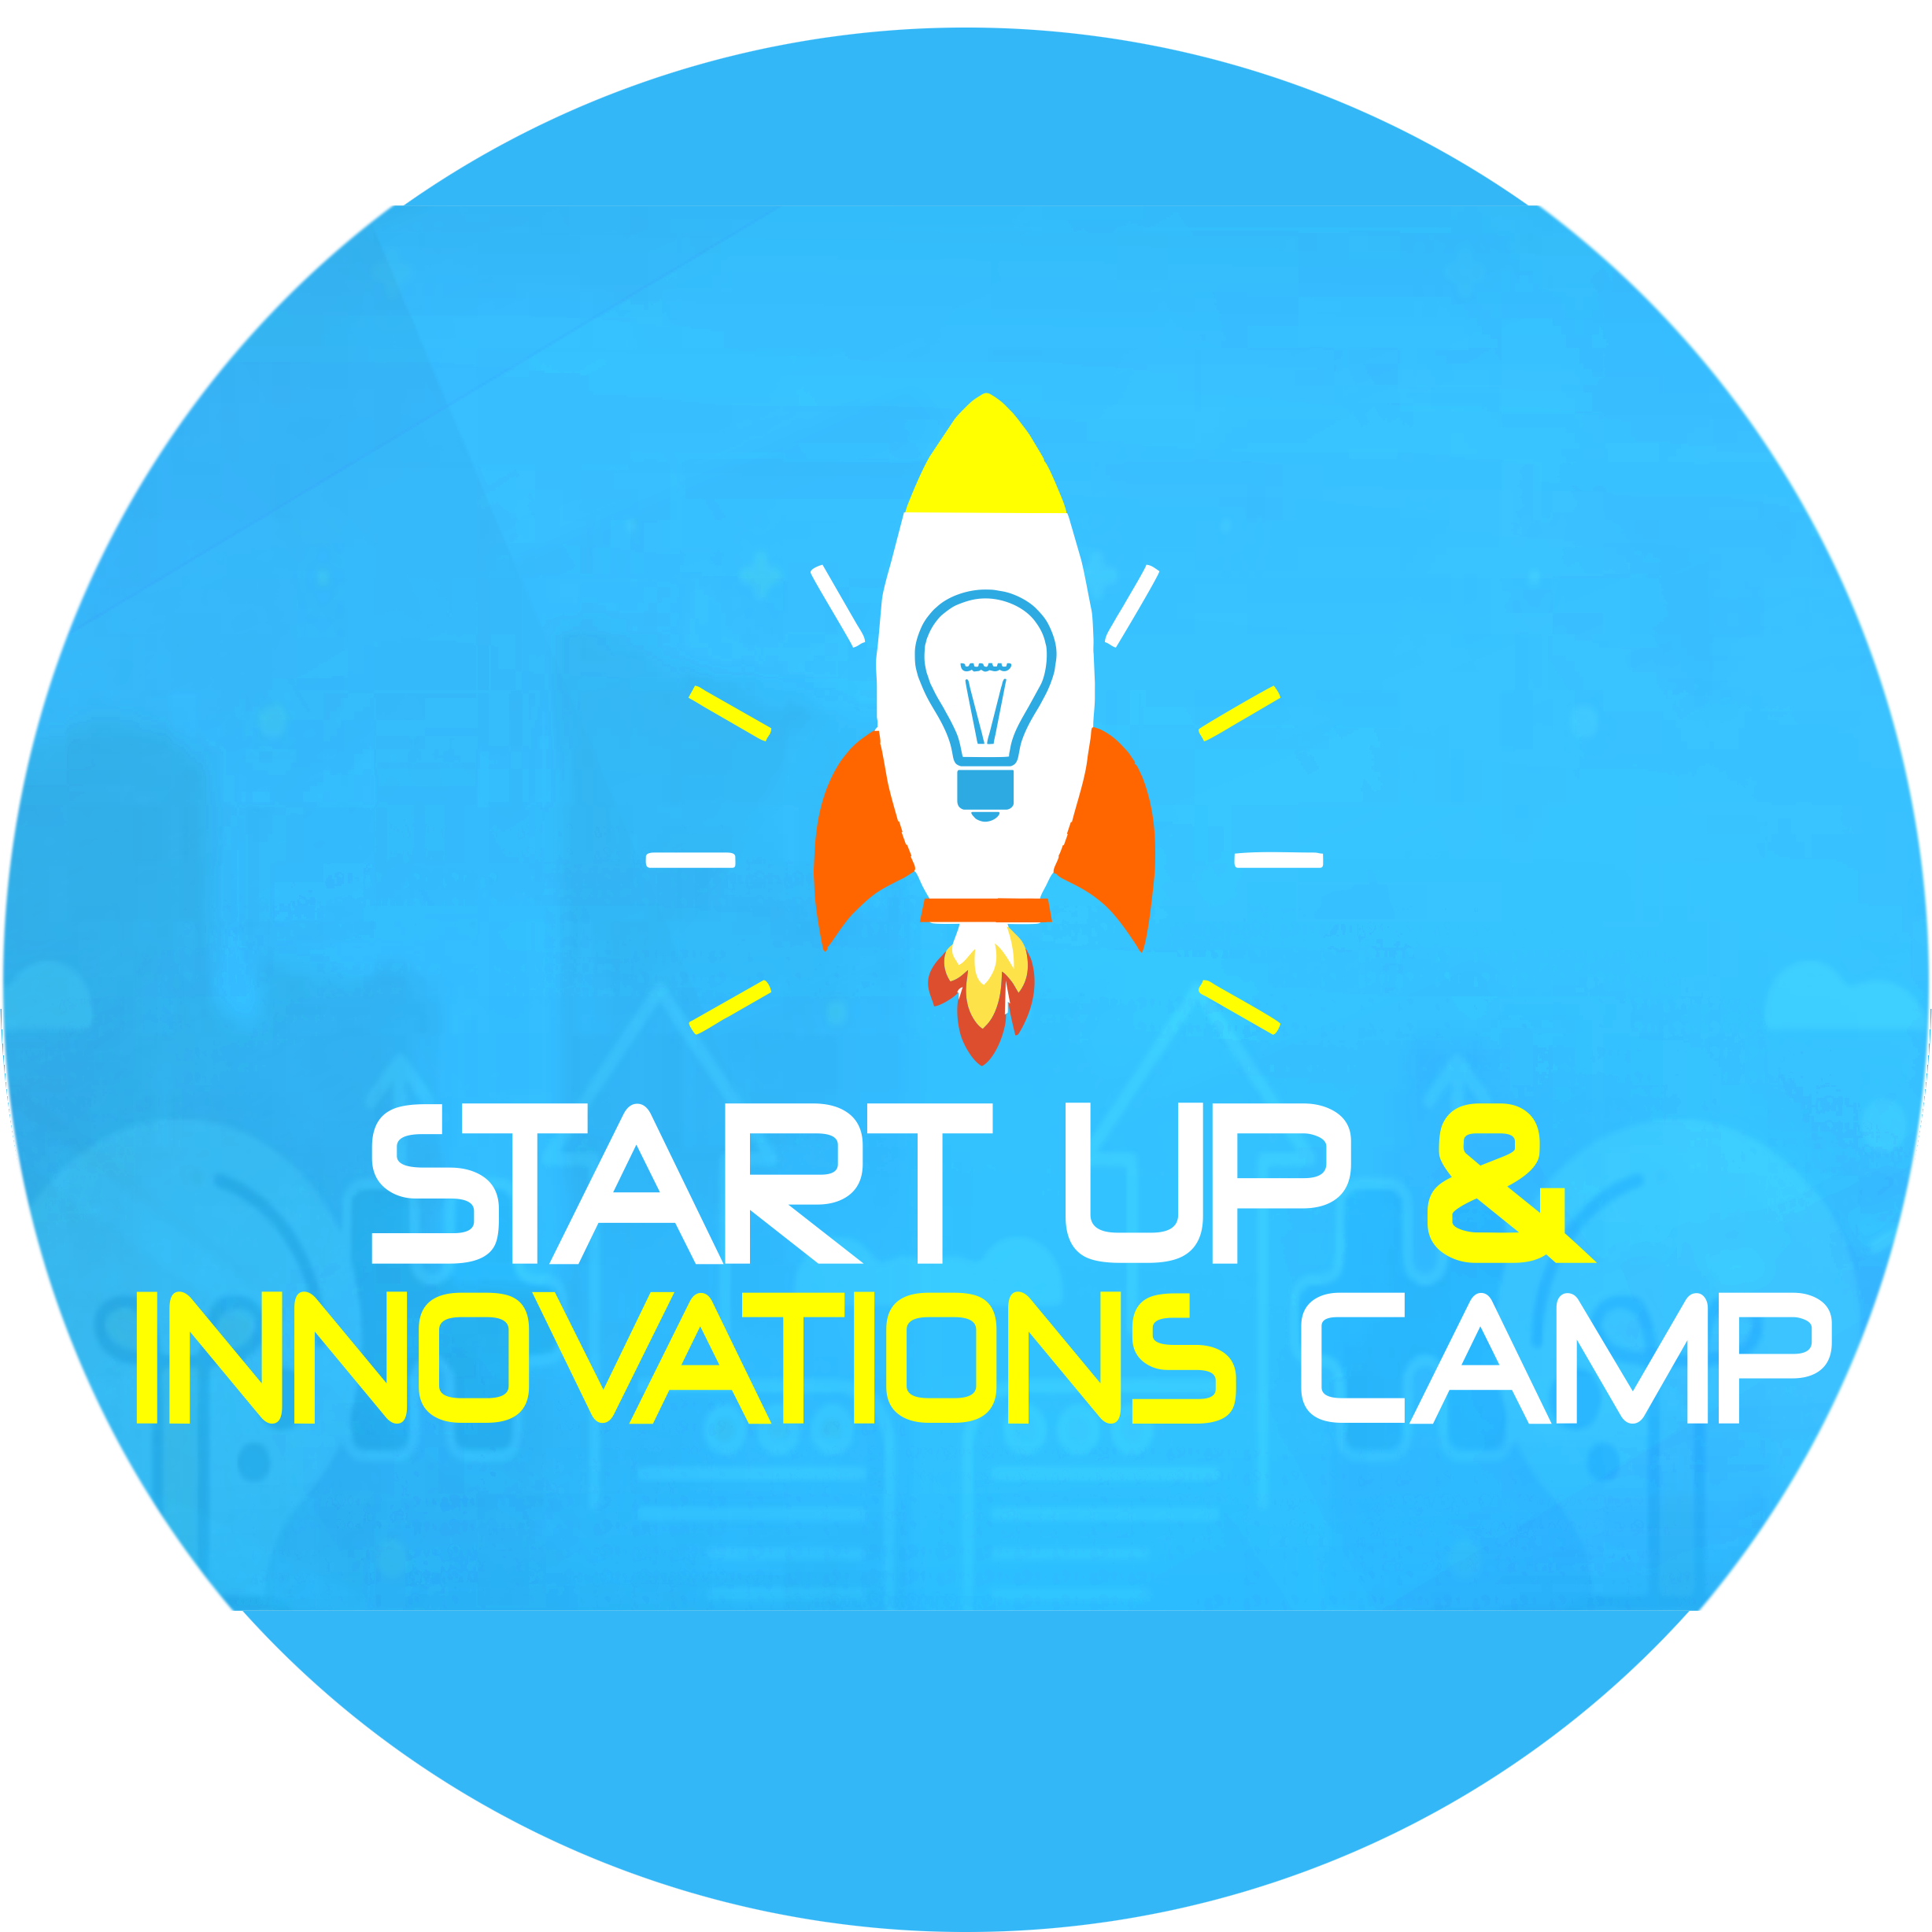 STARTUP & INNOVATIONS CAMP